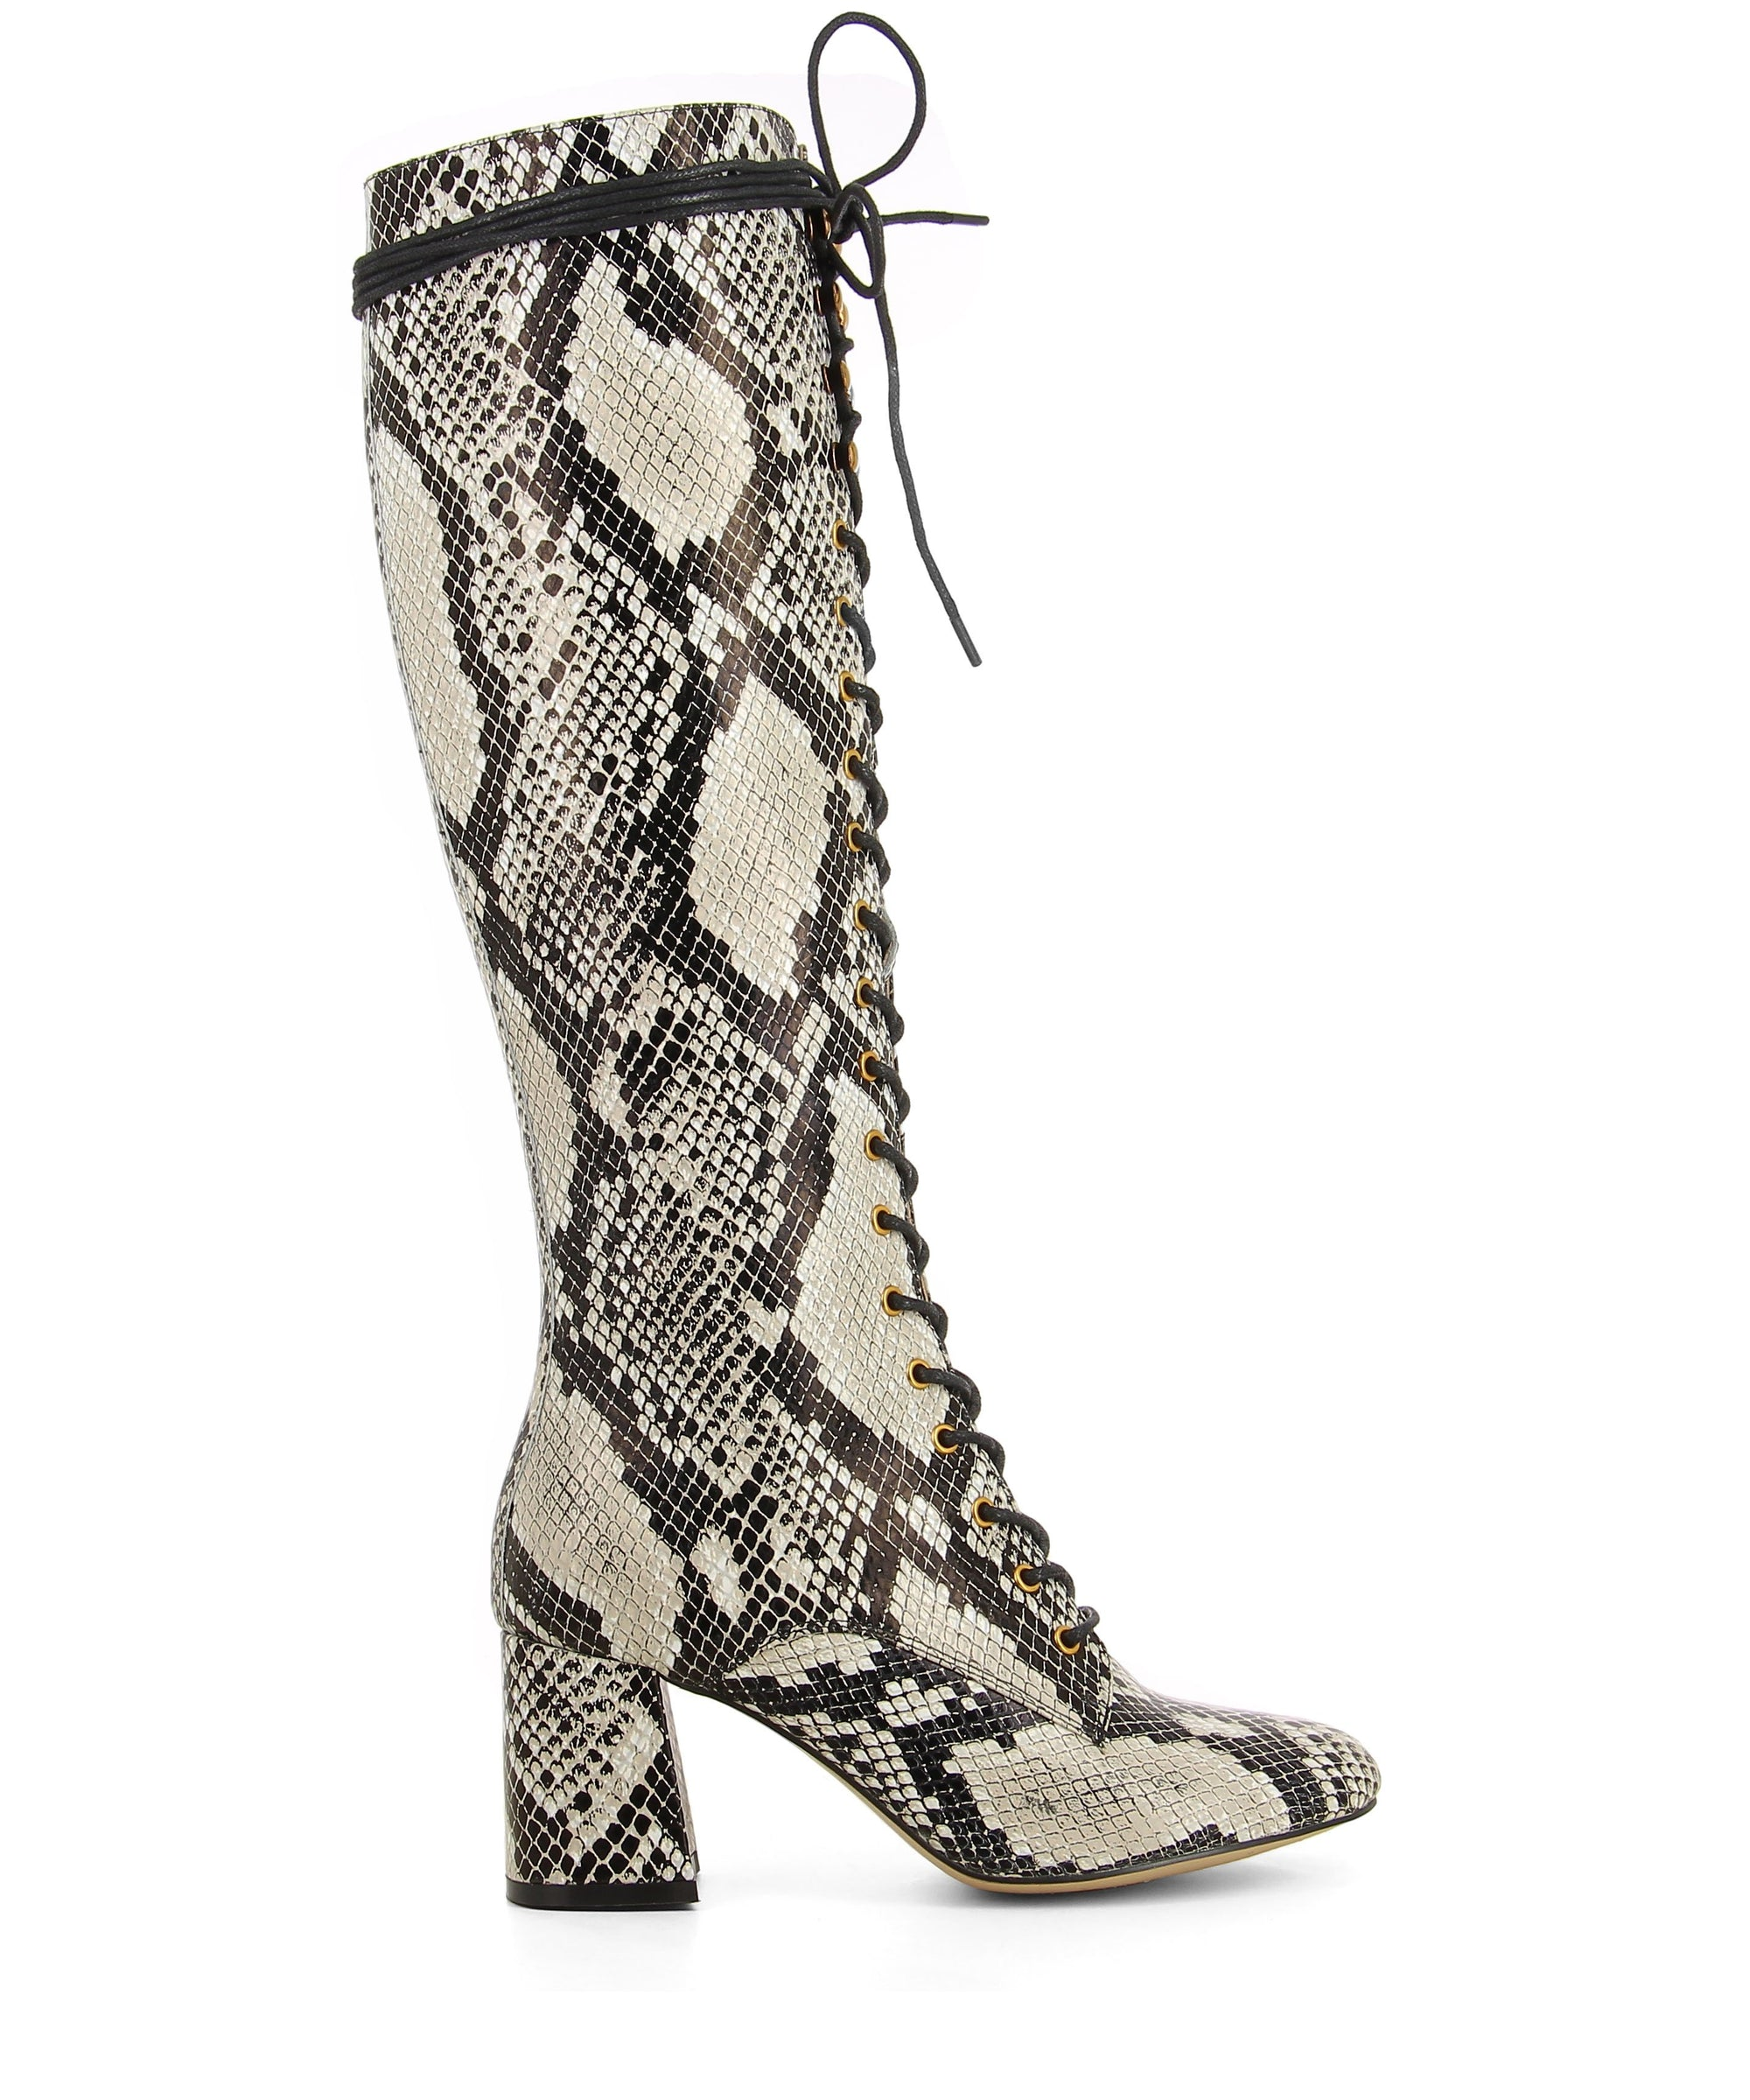 Black and white snake print knee high boots featuring lace up fastenings, gold eyelets, a block heel and an almond toe by 2 Baia Vista.